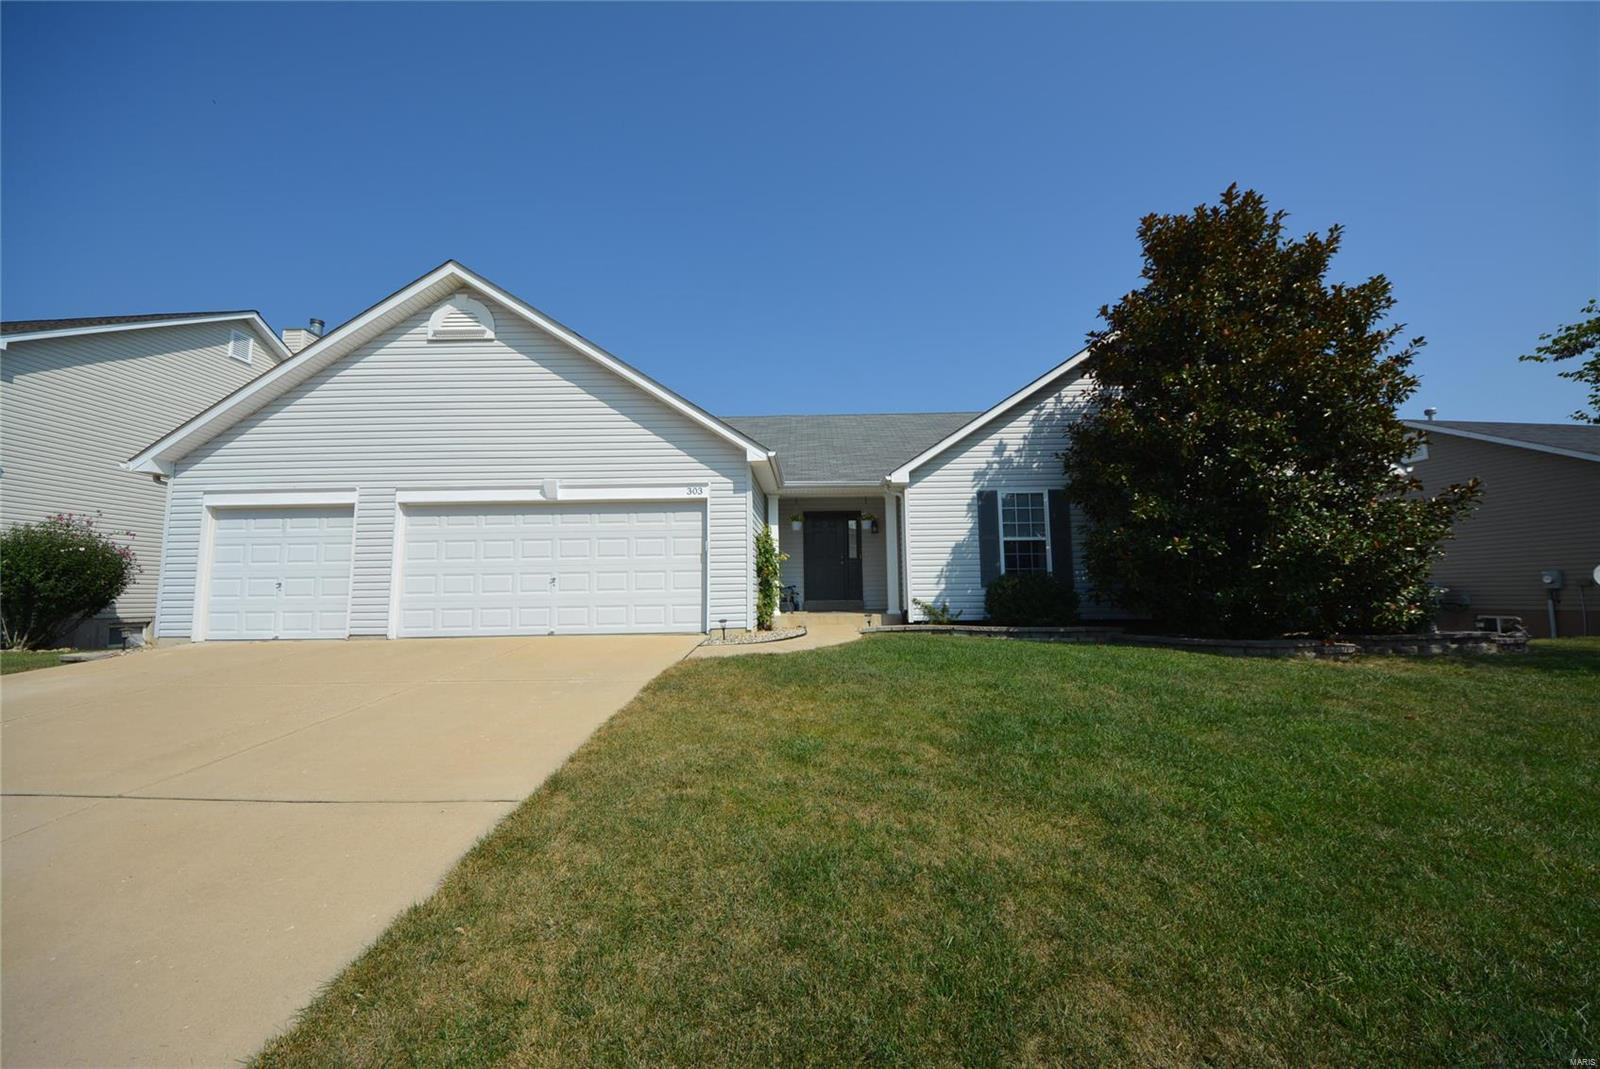 WELCOME HOME to this MOVE-IN-READY 3BR 2BTH great rm ranch w/1621 SF in the Wentzville School District! Nestled on nearly a quarter of an acre level lot this home offers great curb appeal w/vinyl front, covered porch, lush landscaping & 3 car garage. Walking in you'll notice the spacious great rm w/tall vaulted ceilings. The eat-in kitchen offers tons of cabinets, pantry, bkft rm w/bay window & door to the patio looking out to the lvl fenced backyard perfect for relaxing & entertaining outdoors. The luxurious main floor master suite provides a LG walk-in closet & deluxe full BTH w/jetted tub & sept shower. 2 add'l BR, full BTH & laundry complete the main. The clean lower lvl w/rough in for bth is just waiting for your custom finish for added living space. Great location w/easy access to major hwys, great schools, shopping & restaurants. A MUST SEE!